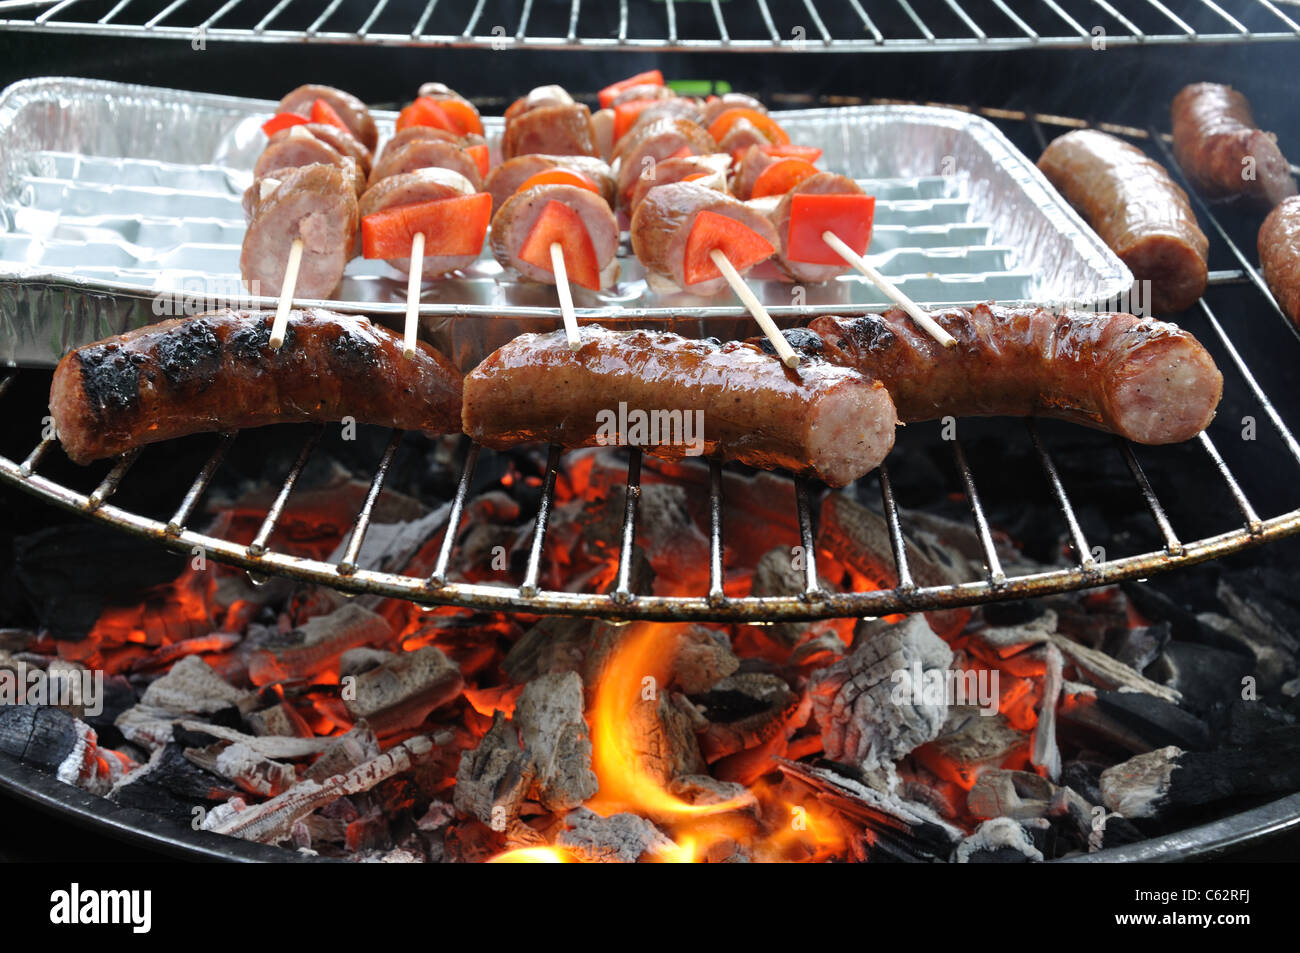 Barbecue grill - Stock Image